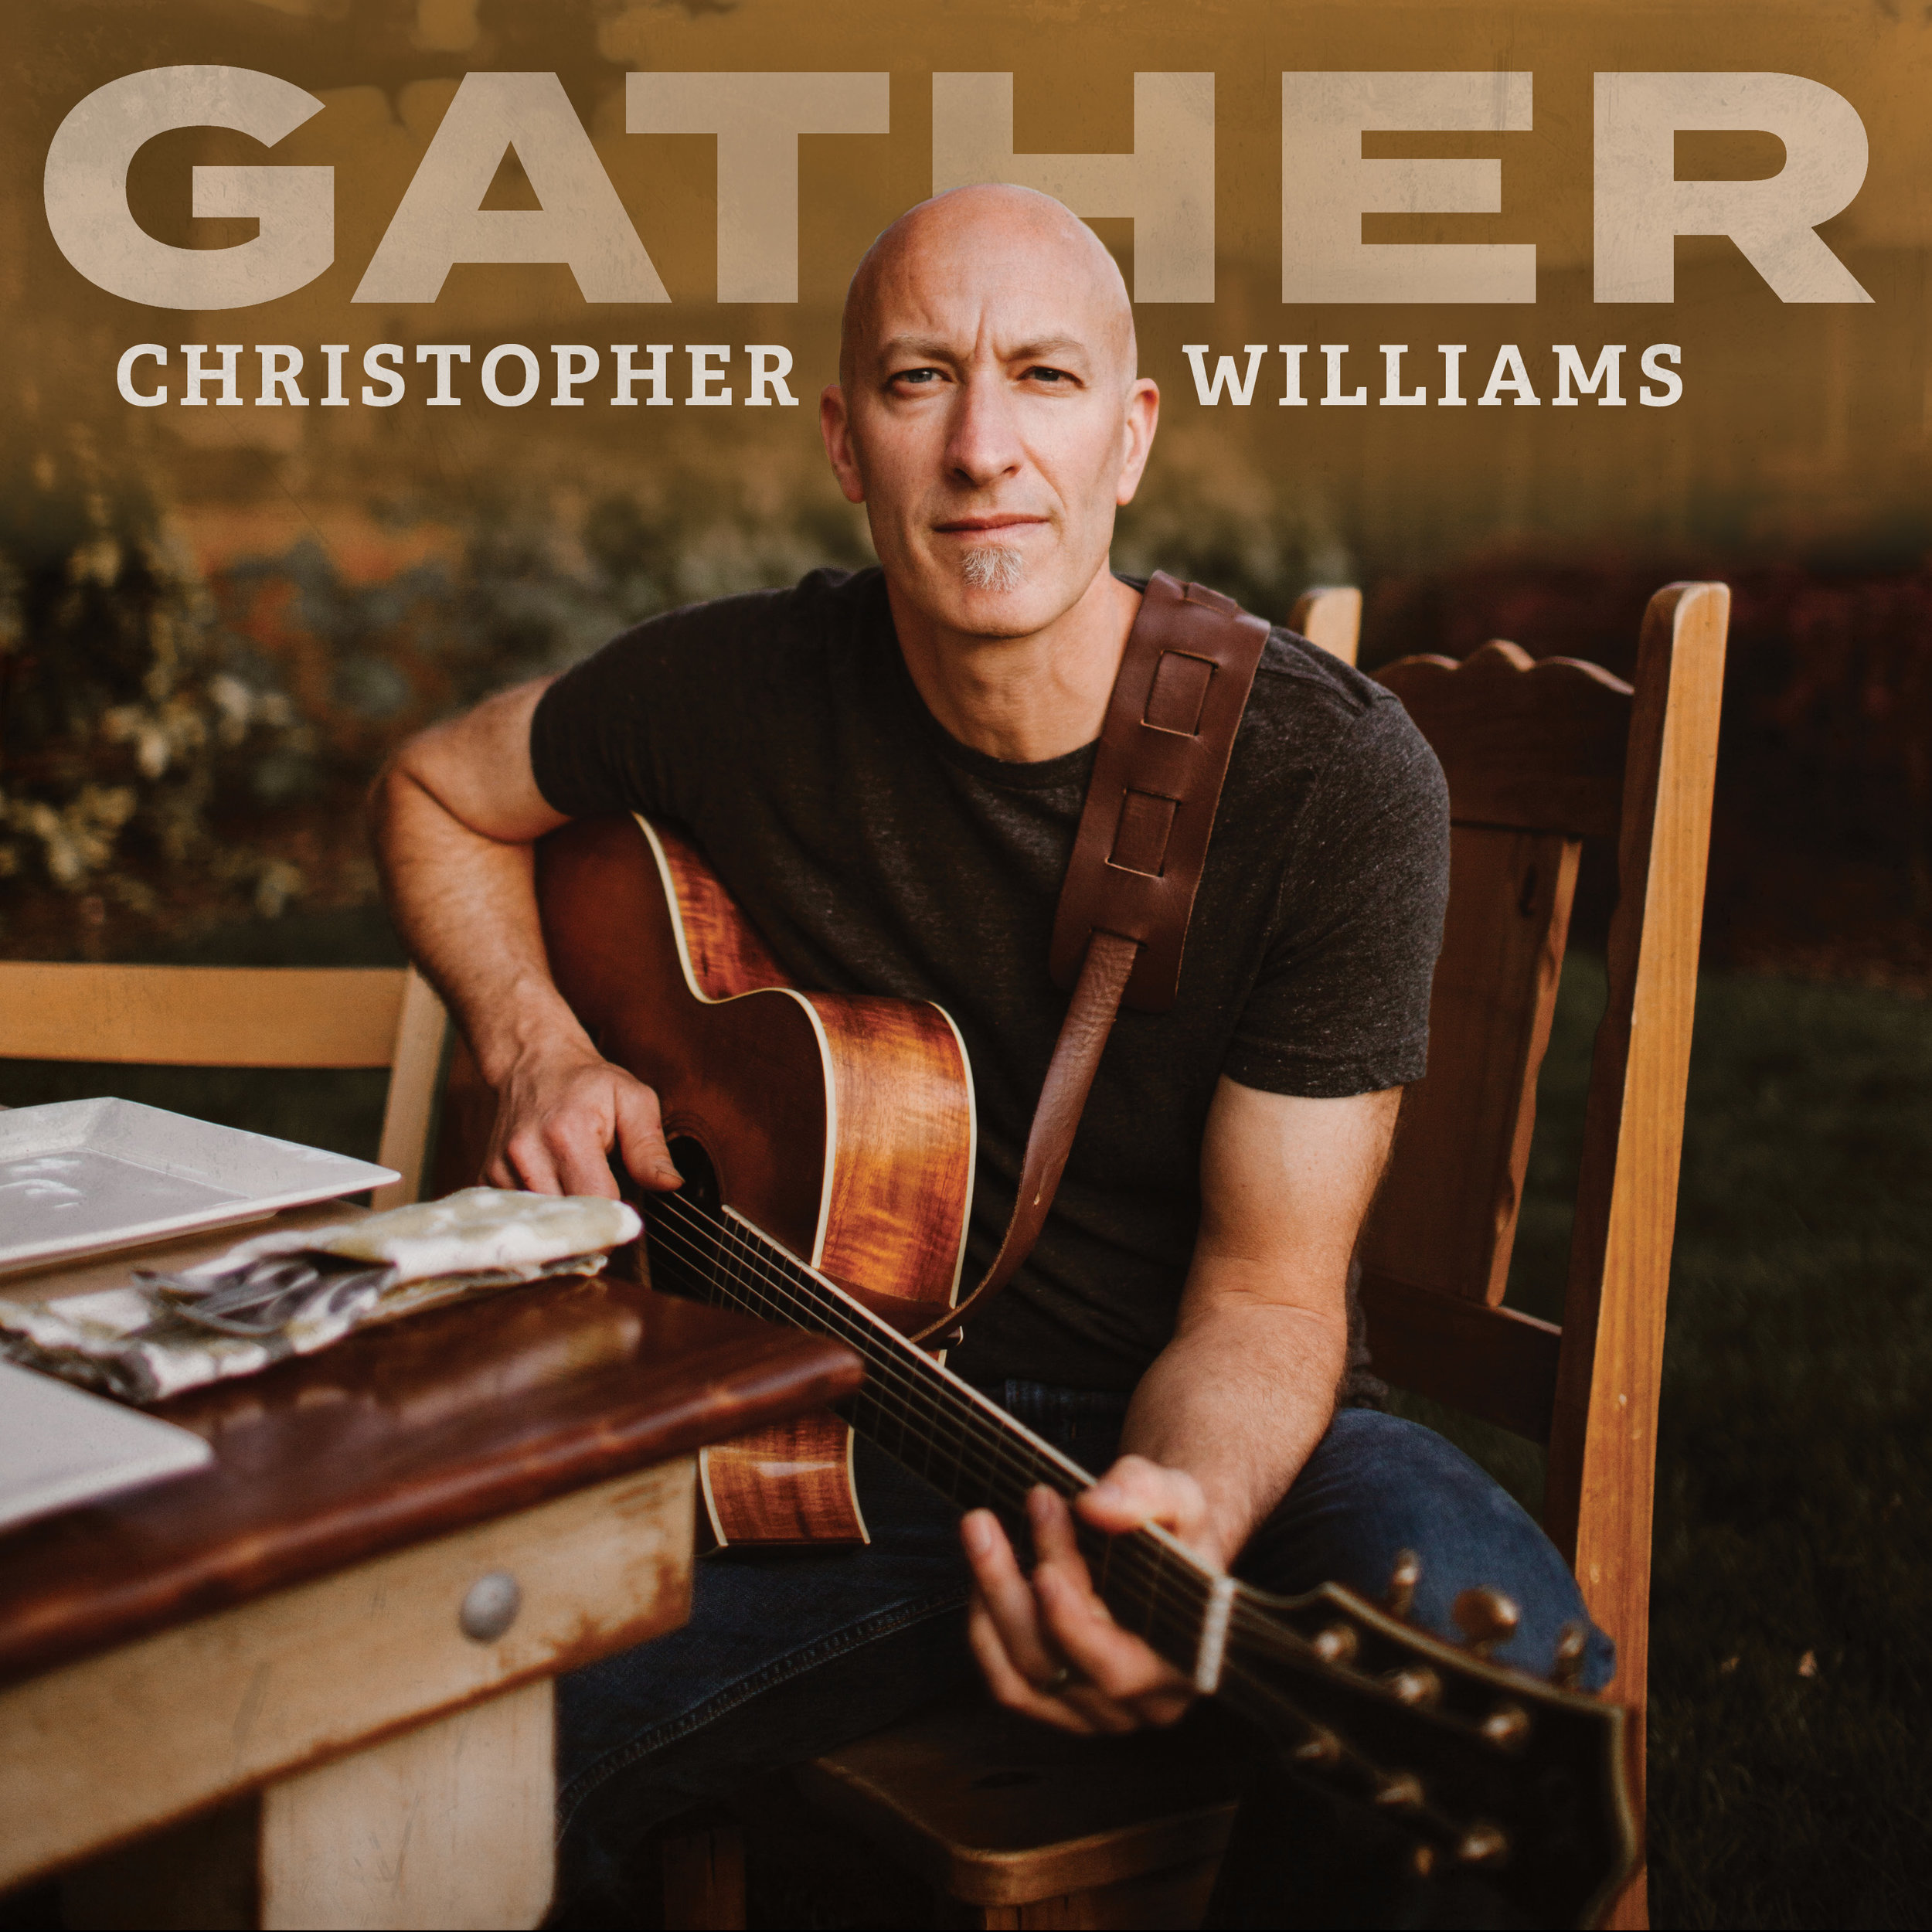 Gather-ChristopherWilliams-RGB.jpg